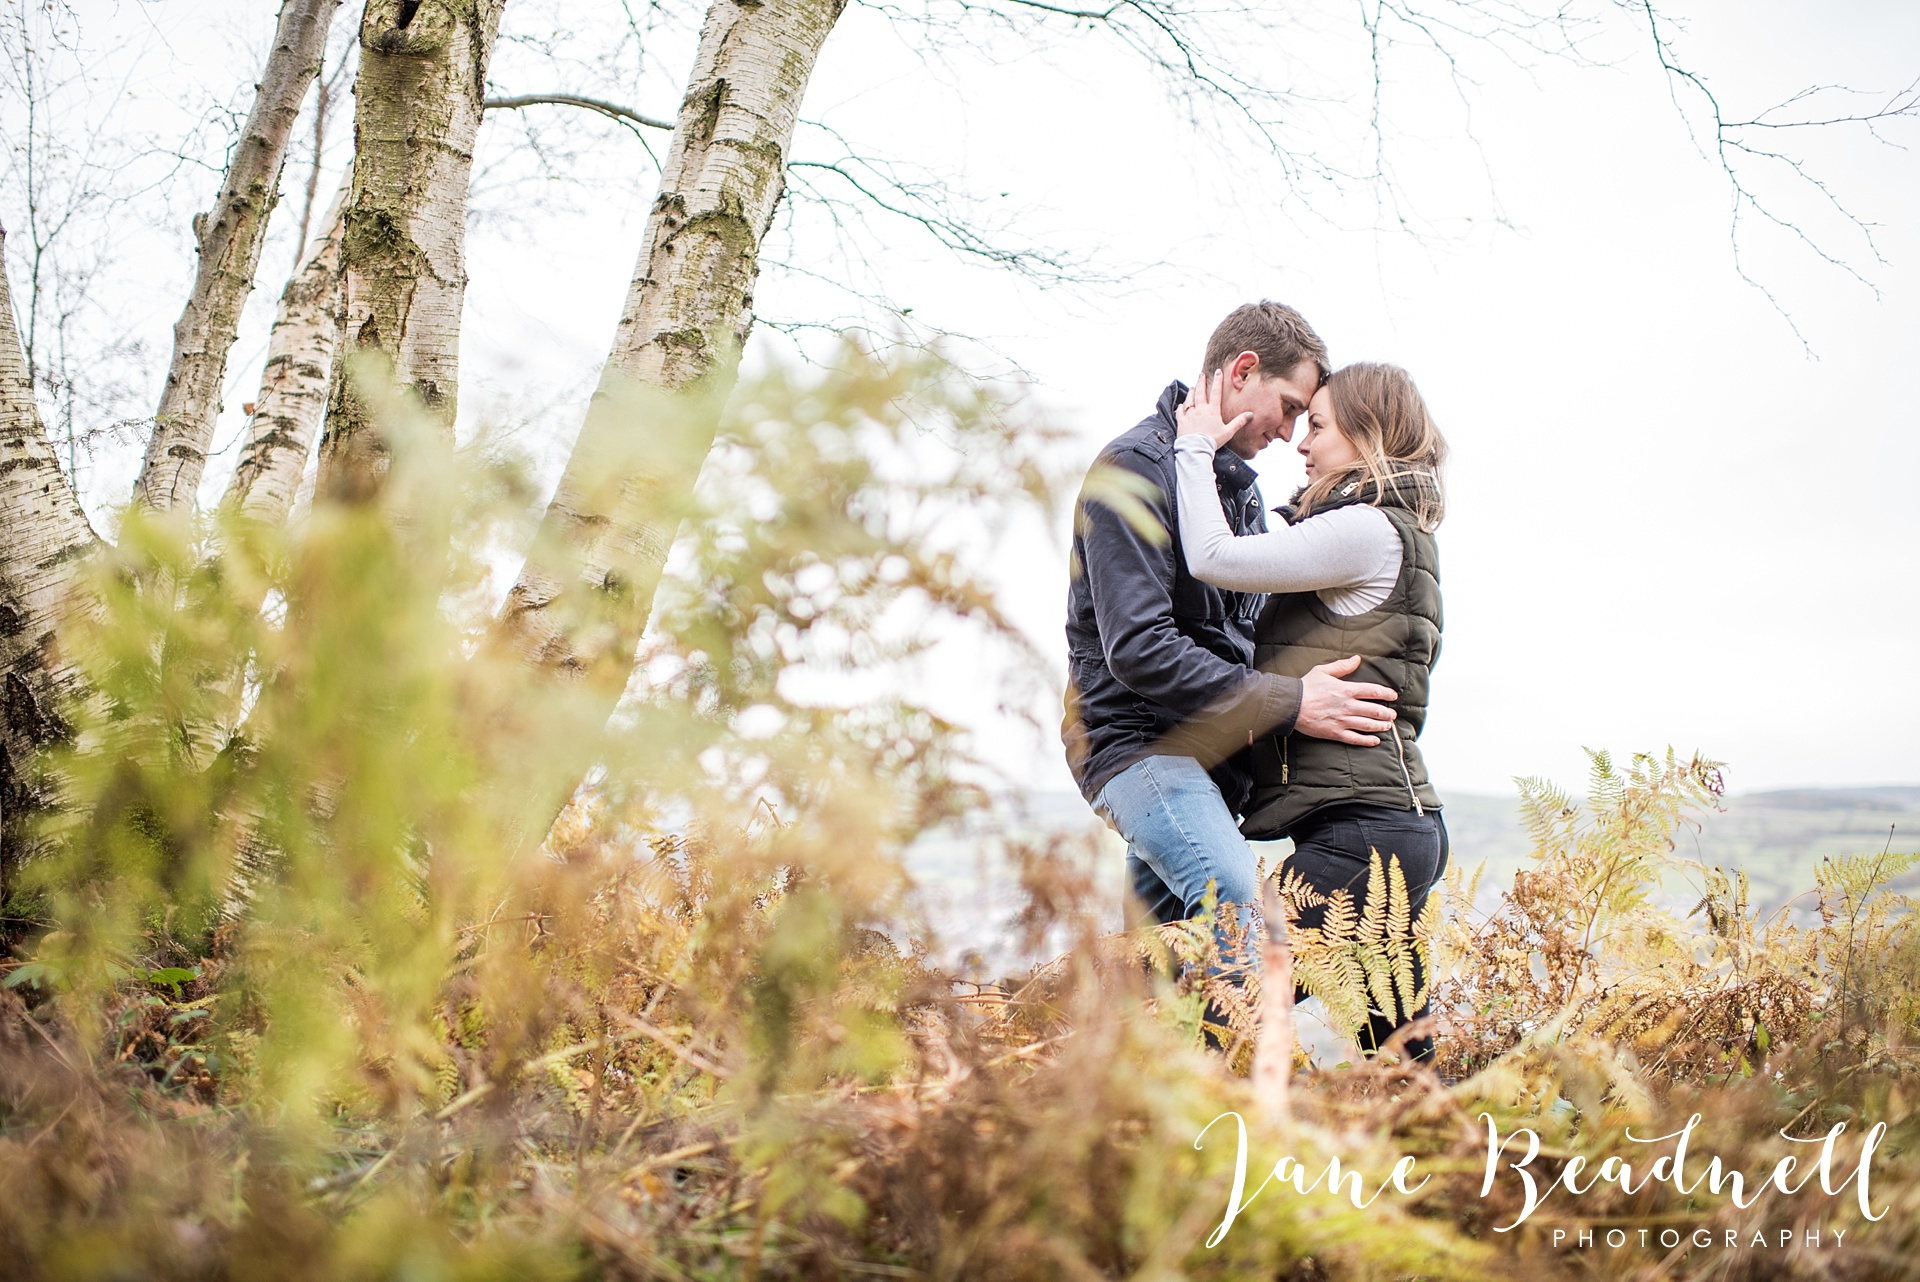 engagement-shoot-yorkshire-wedding-photographer-jane-beadnell-photography-uk-and-destination-wedding-photographer-engagement-shoot_0051